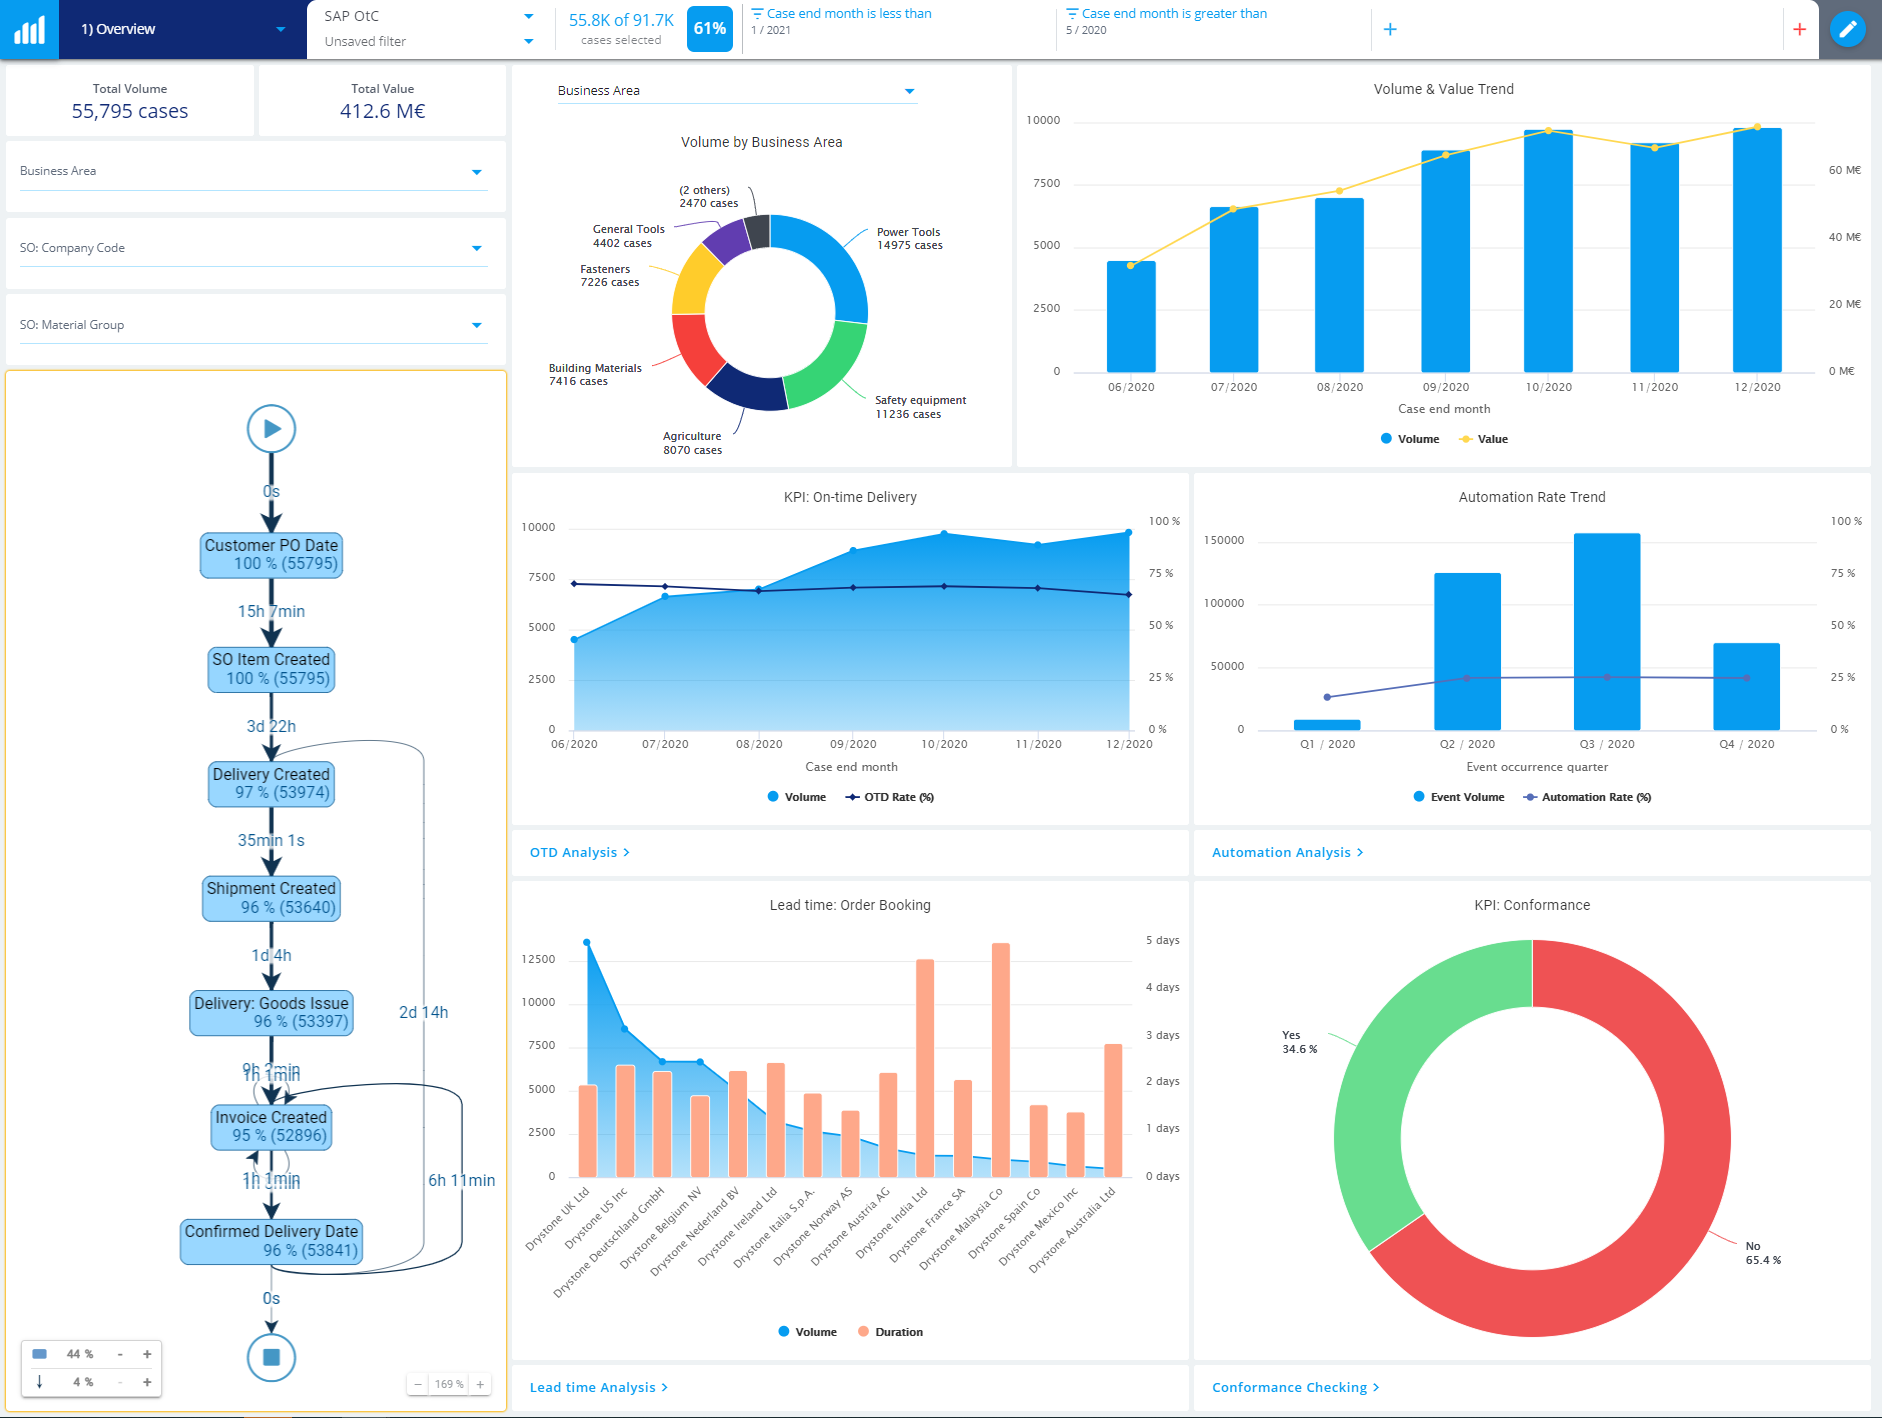 Operations overview QPR ProcessAnalyzer dashboard